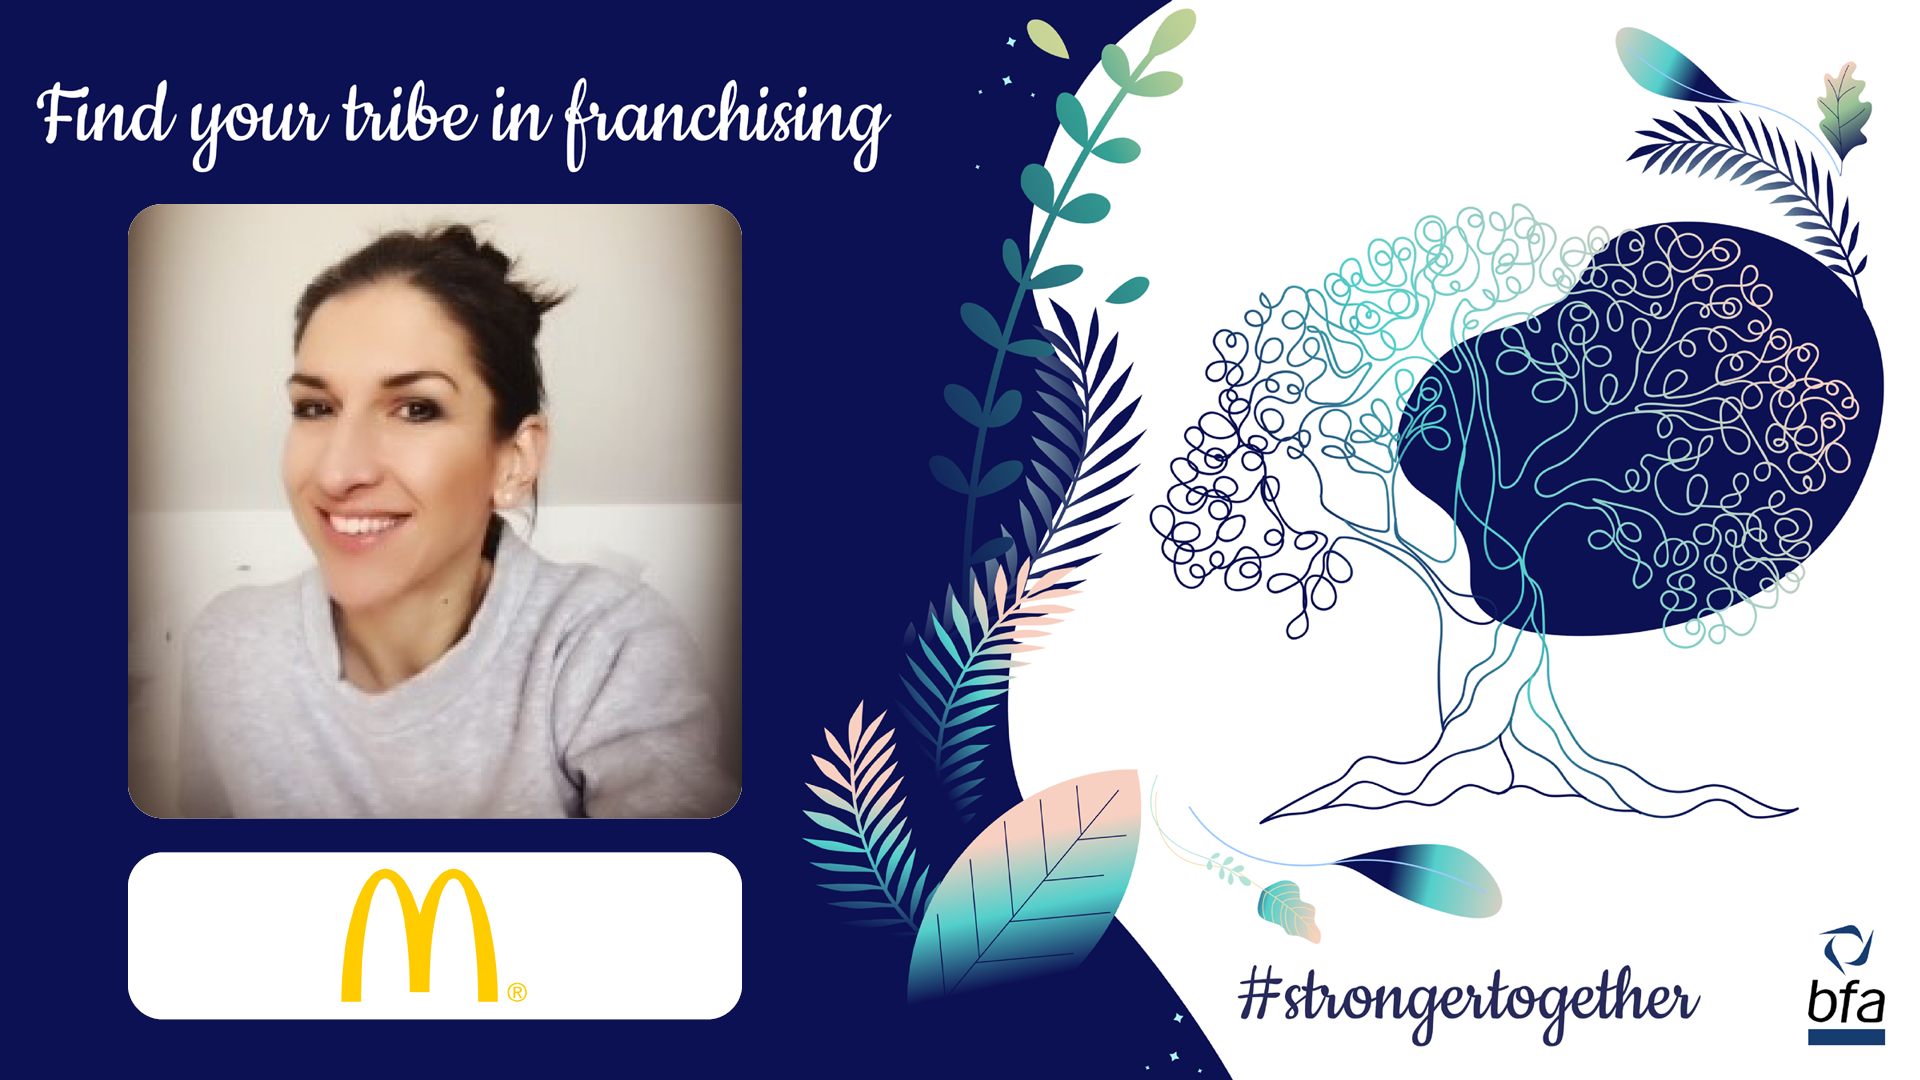 The bfa meets Sarah Lloyd, McDonald's Franchisee